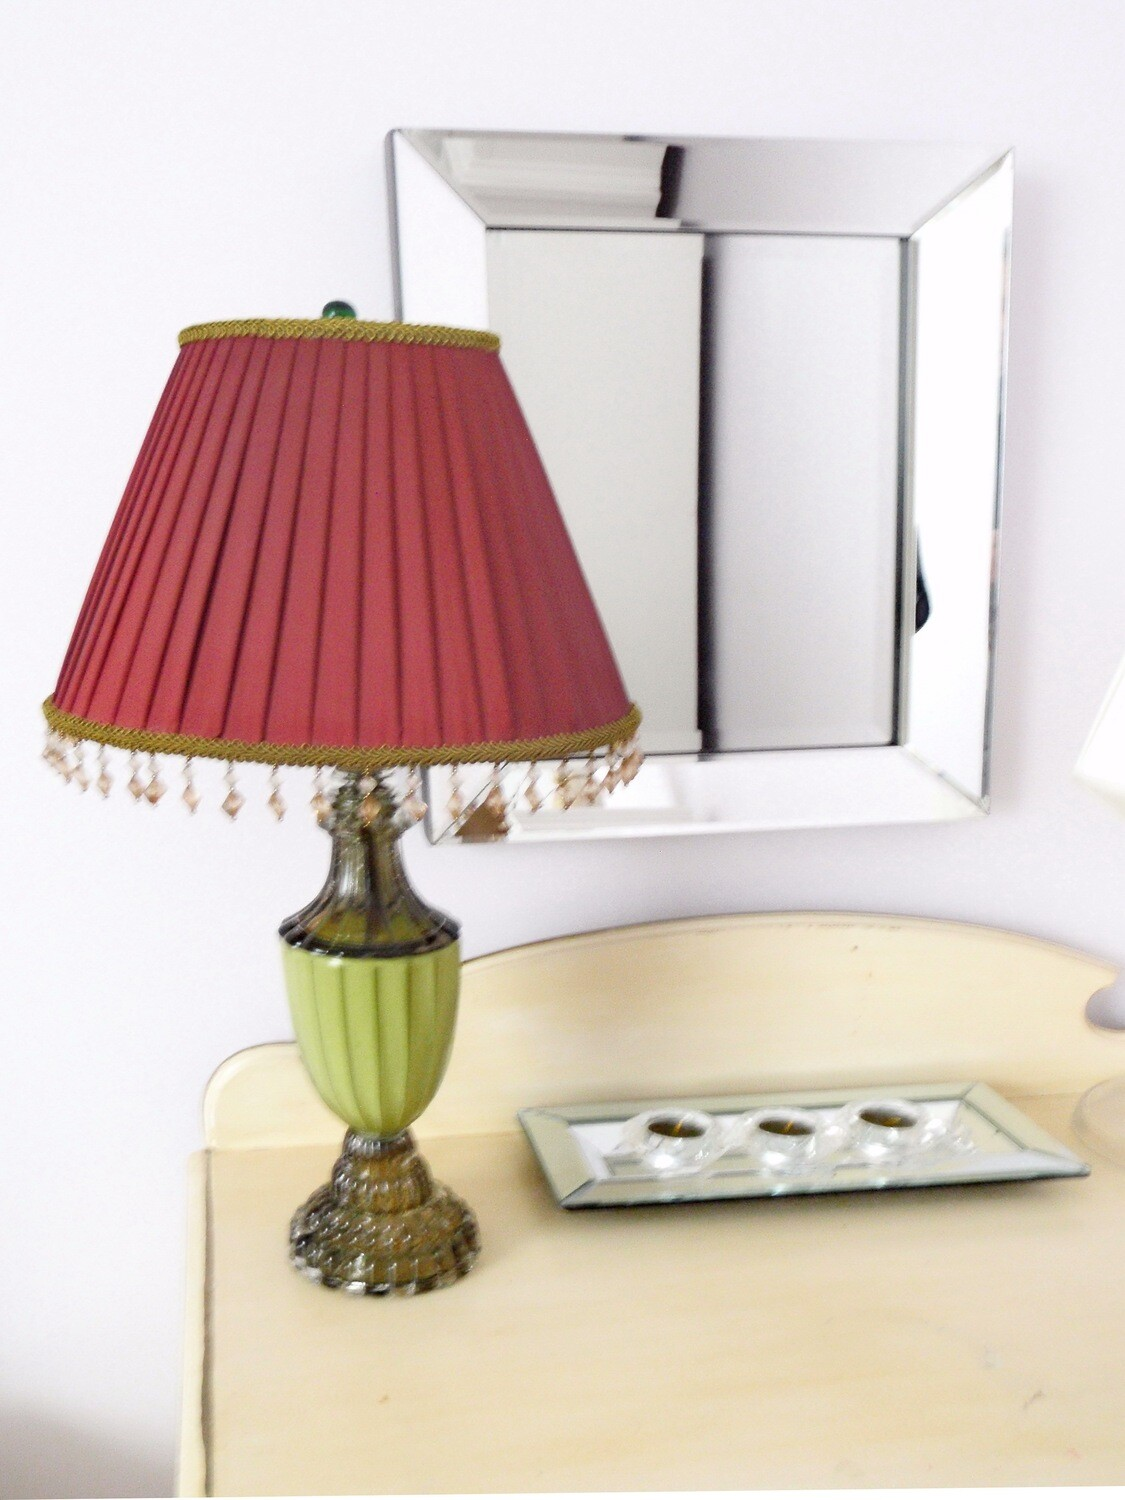 Art Deco 1930s Table Boudoir Lamp Chartreuse Base Red Pleated Shade with Beading